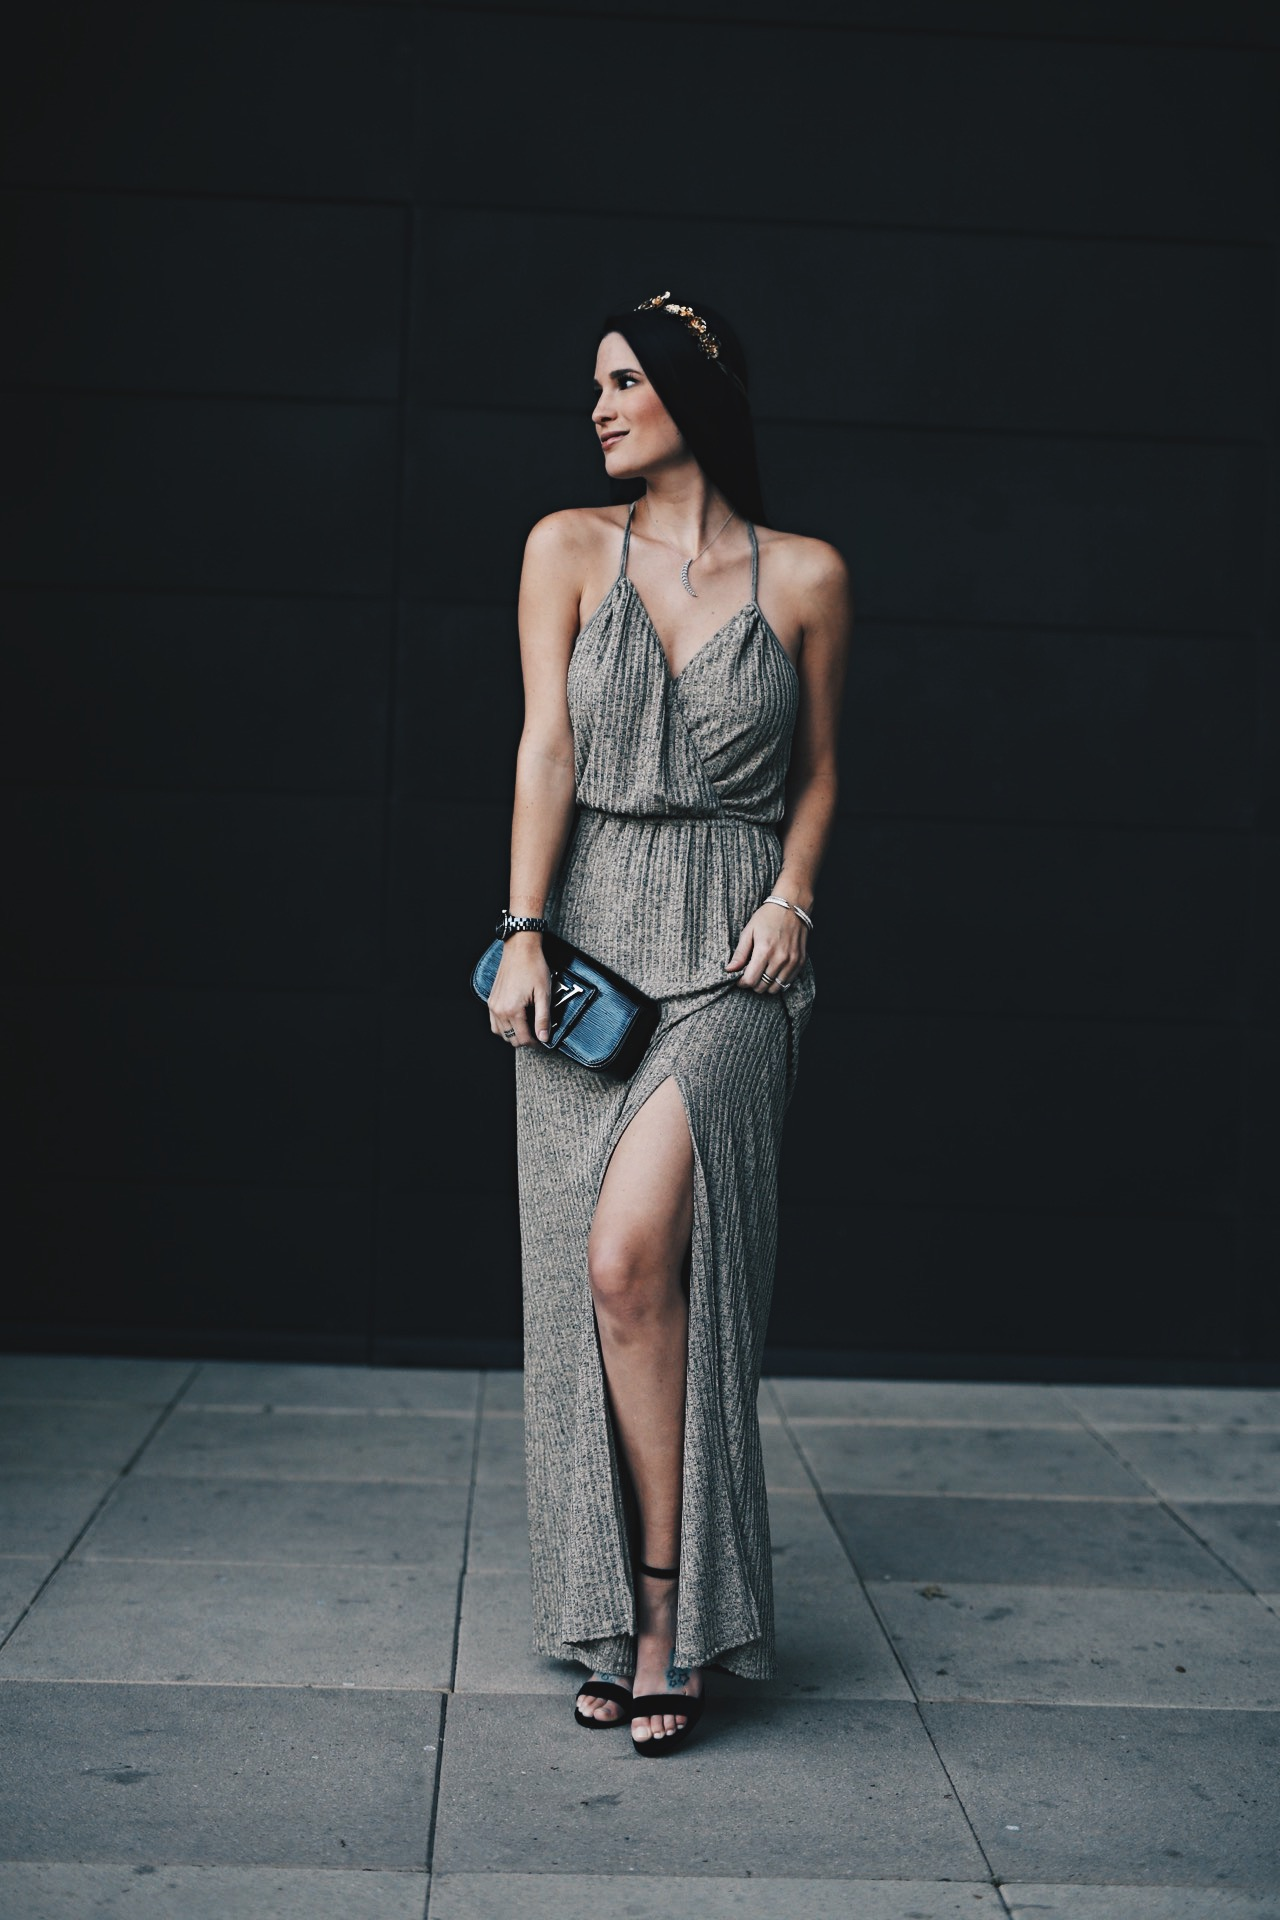 Ashley Hargrove of DTKAustin is wearing an Ella Moss Gold New Years Maxi Dress with a Louis Vuitton Clutch and flower crown